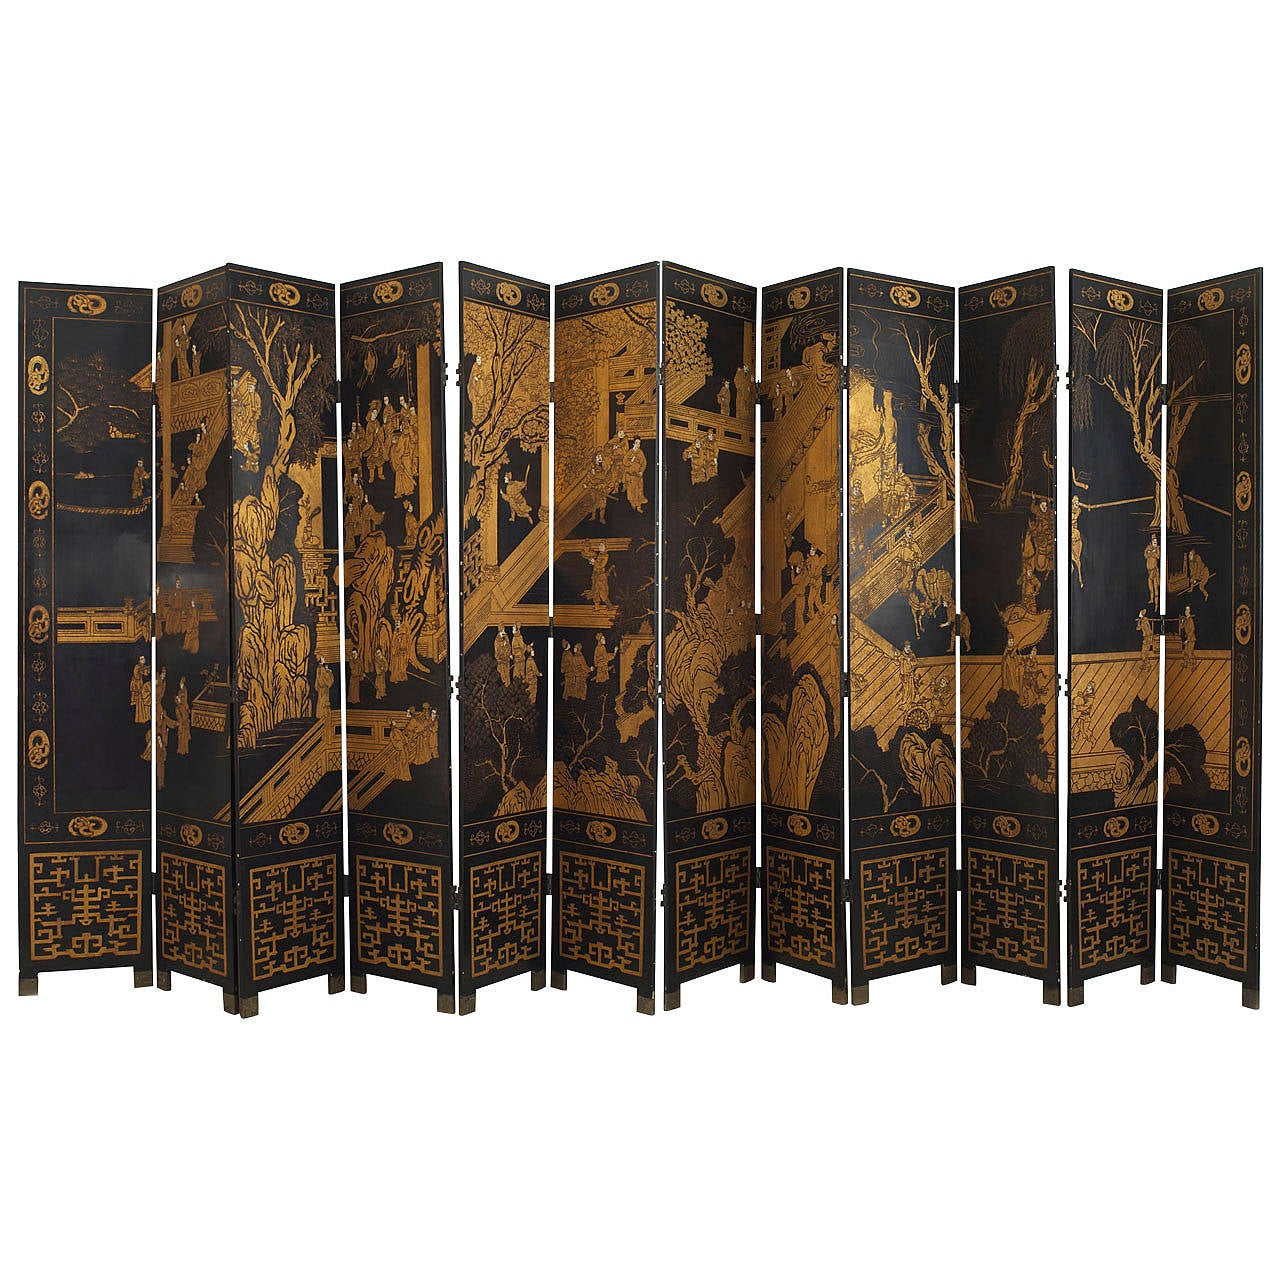 Chinoiserie Gilt and Black Lacquered 12 Panel Screen, 20th Century